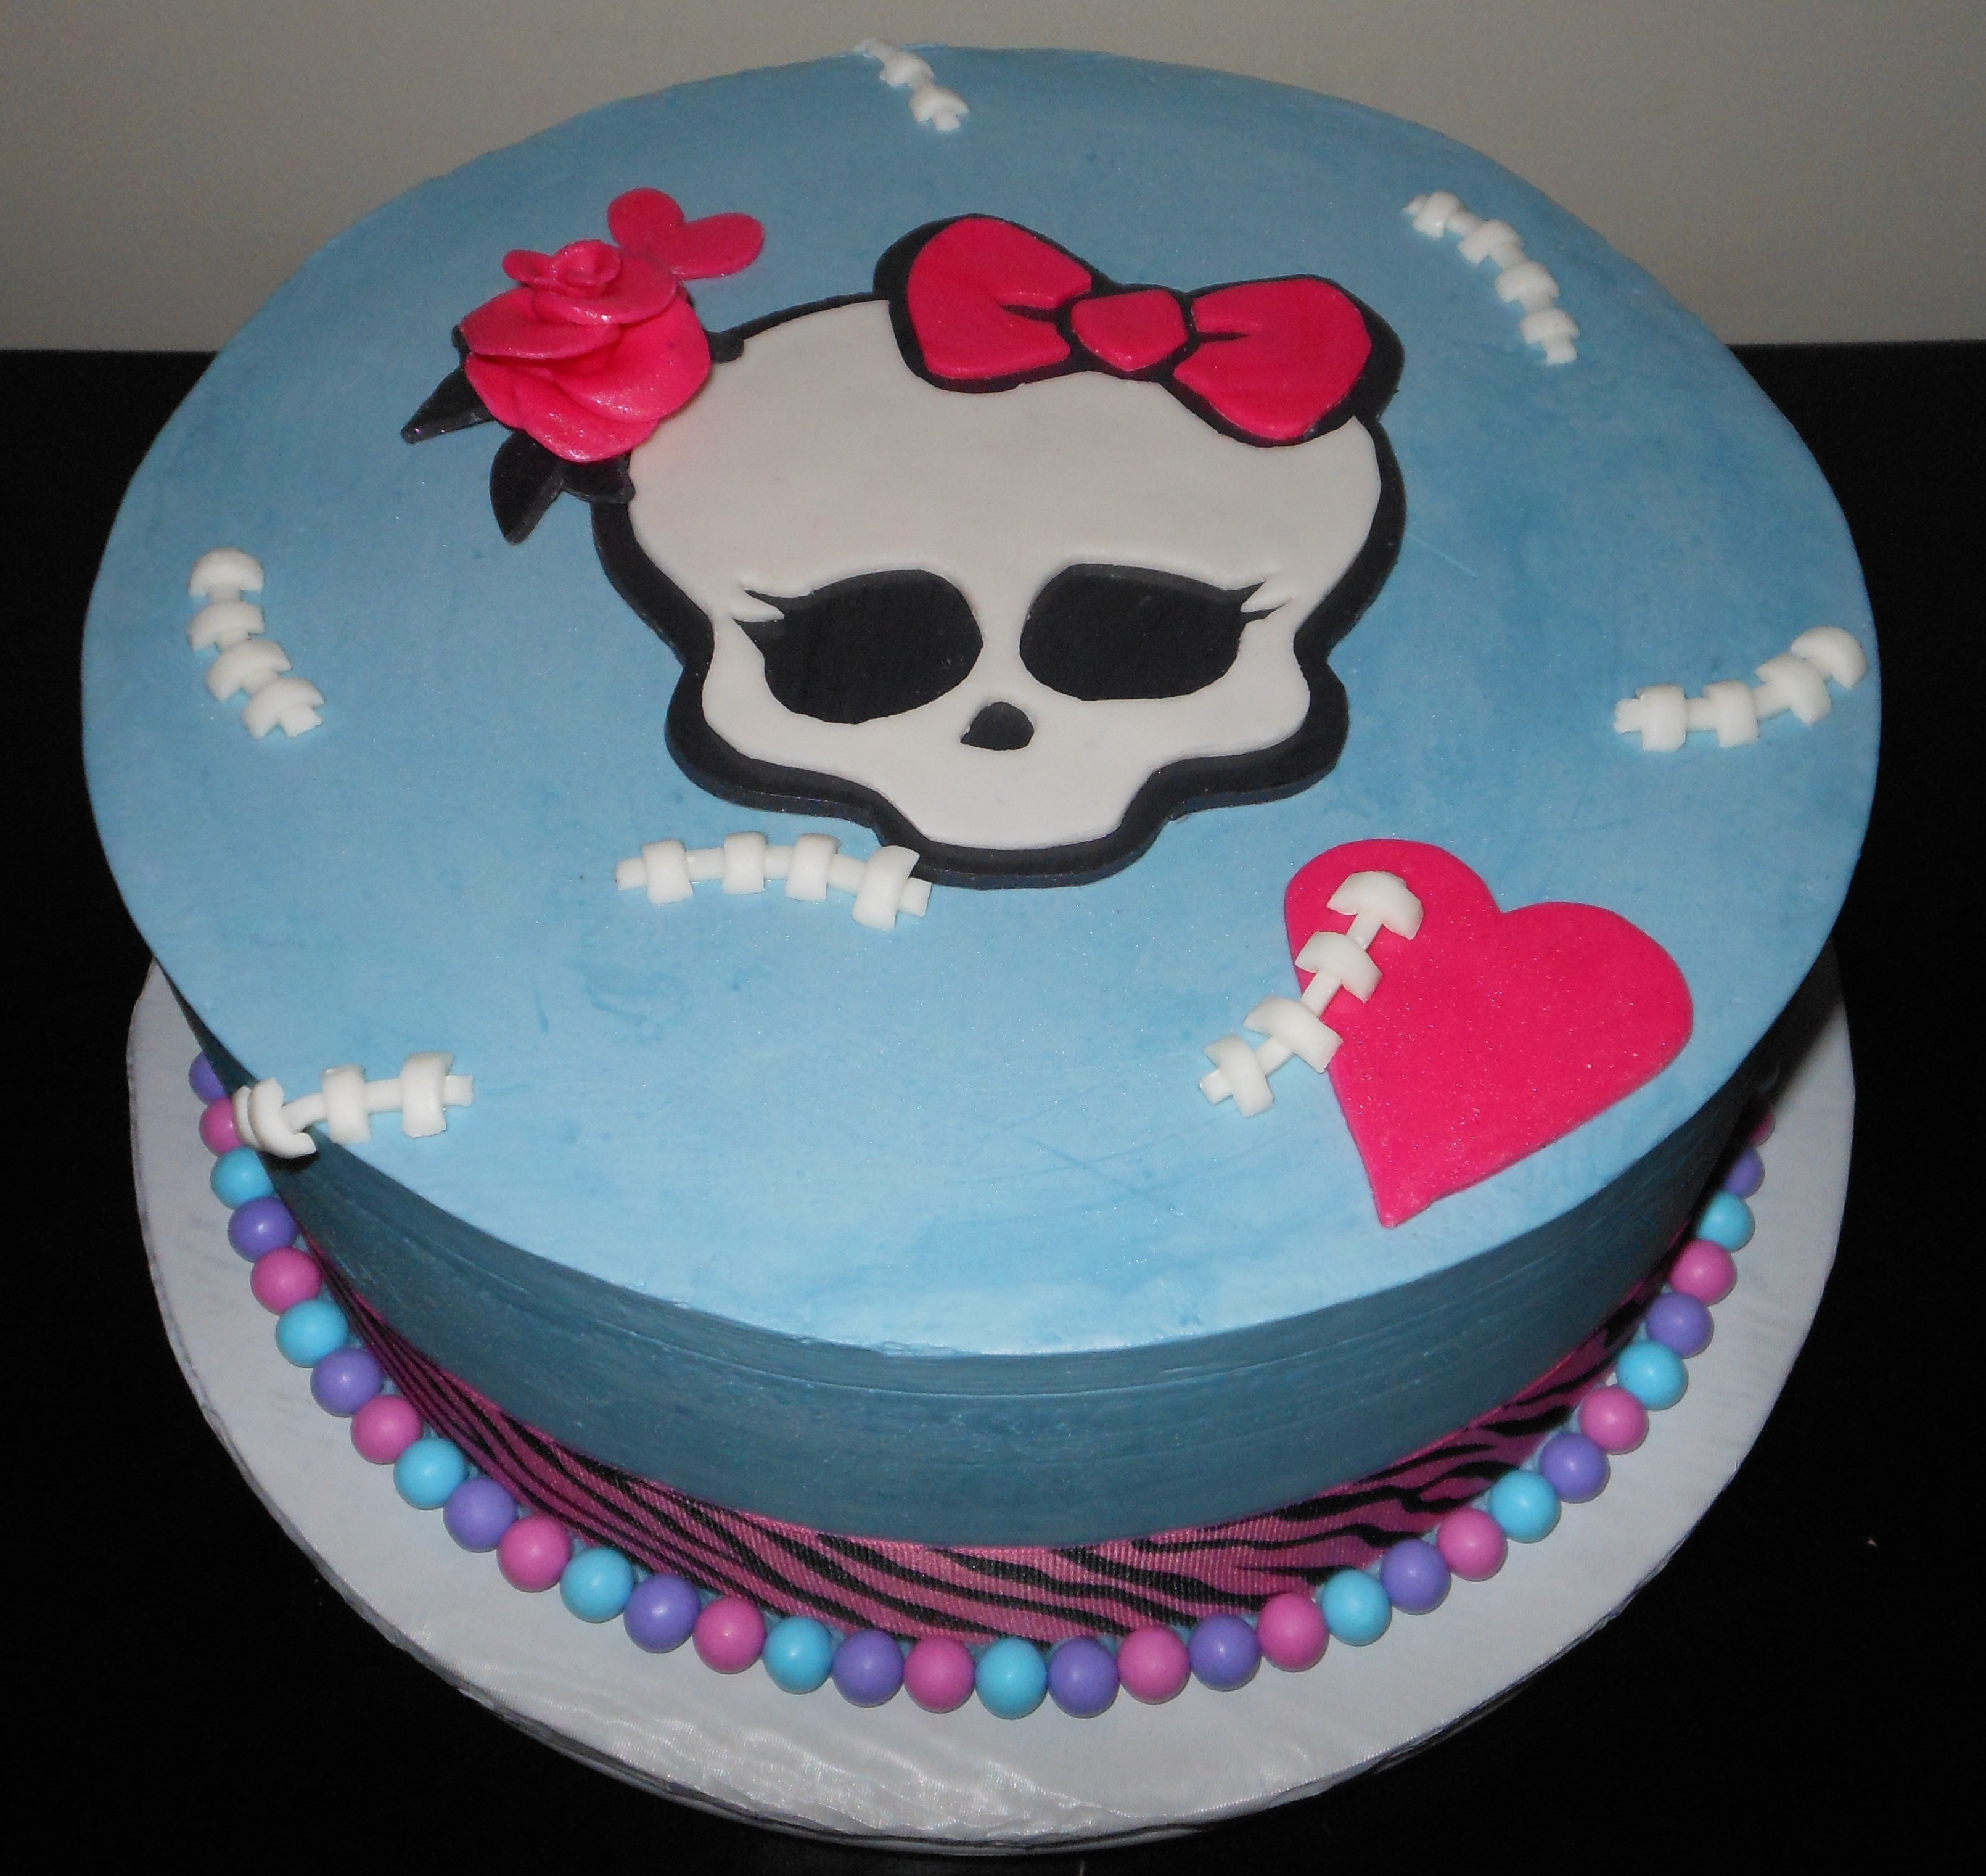 Cool 10 Monster High Birthday Cakes At A Bakery Photo Best Bakeries Funny Birthday Cards Online Barepcheapnameinfo